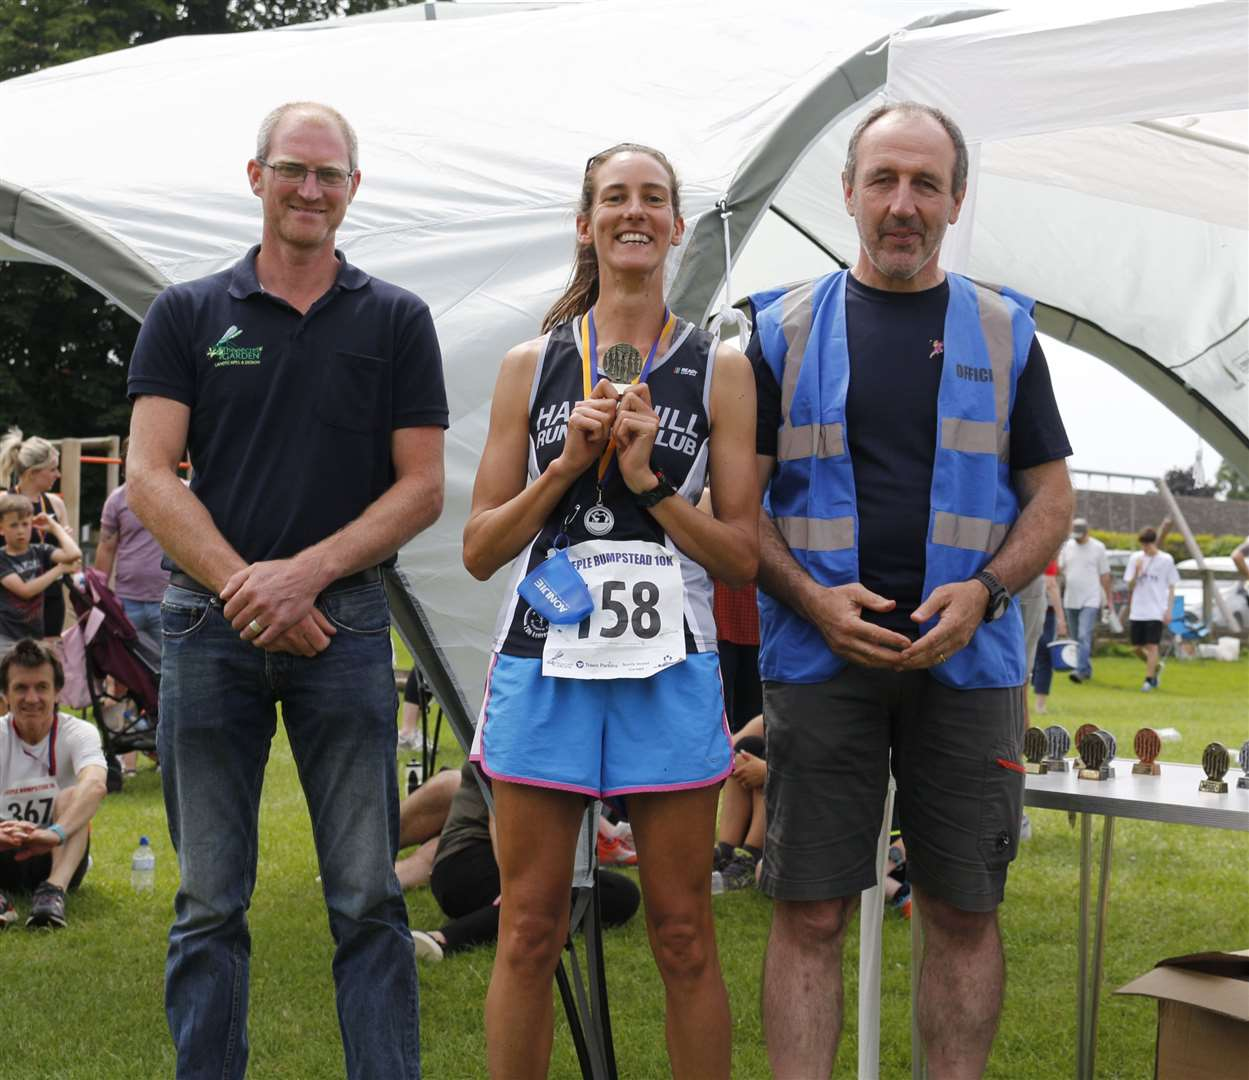 Nicki Davis - first female for Haverhill Running Club at 2019 Steeple Bumpstead 10K. Picture: Paul Brough (13546560)